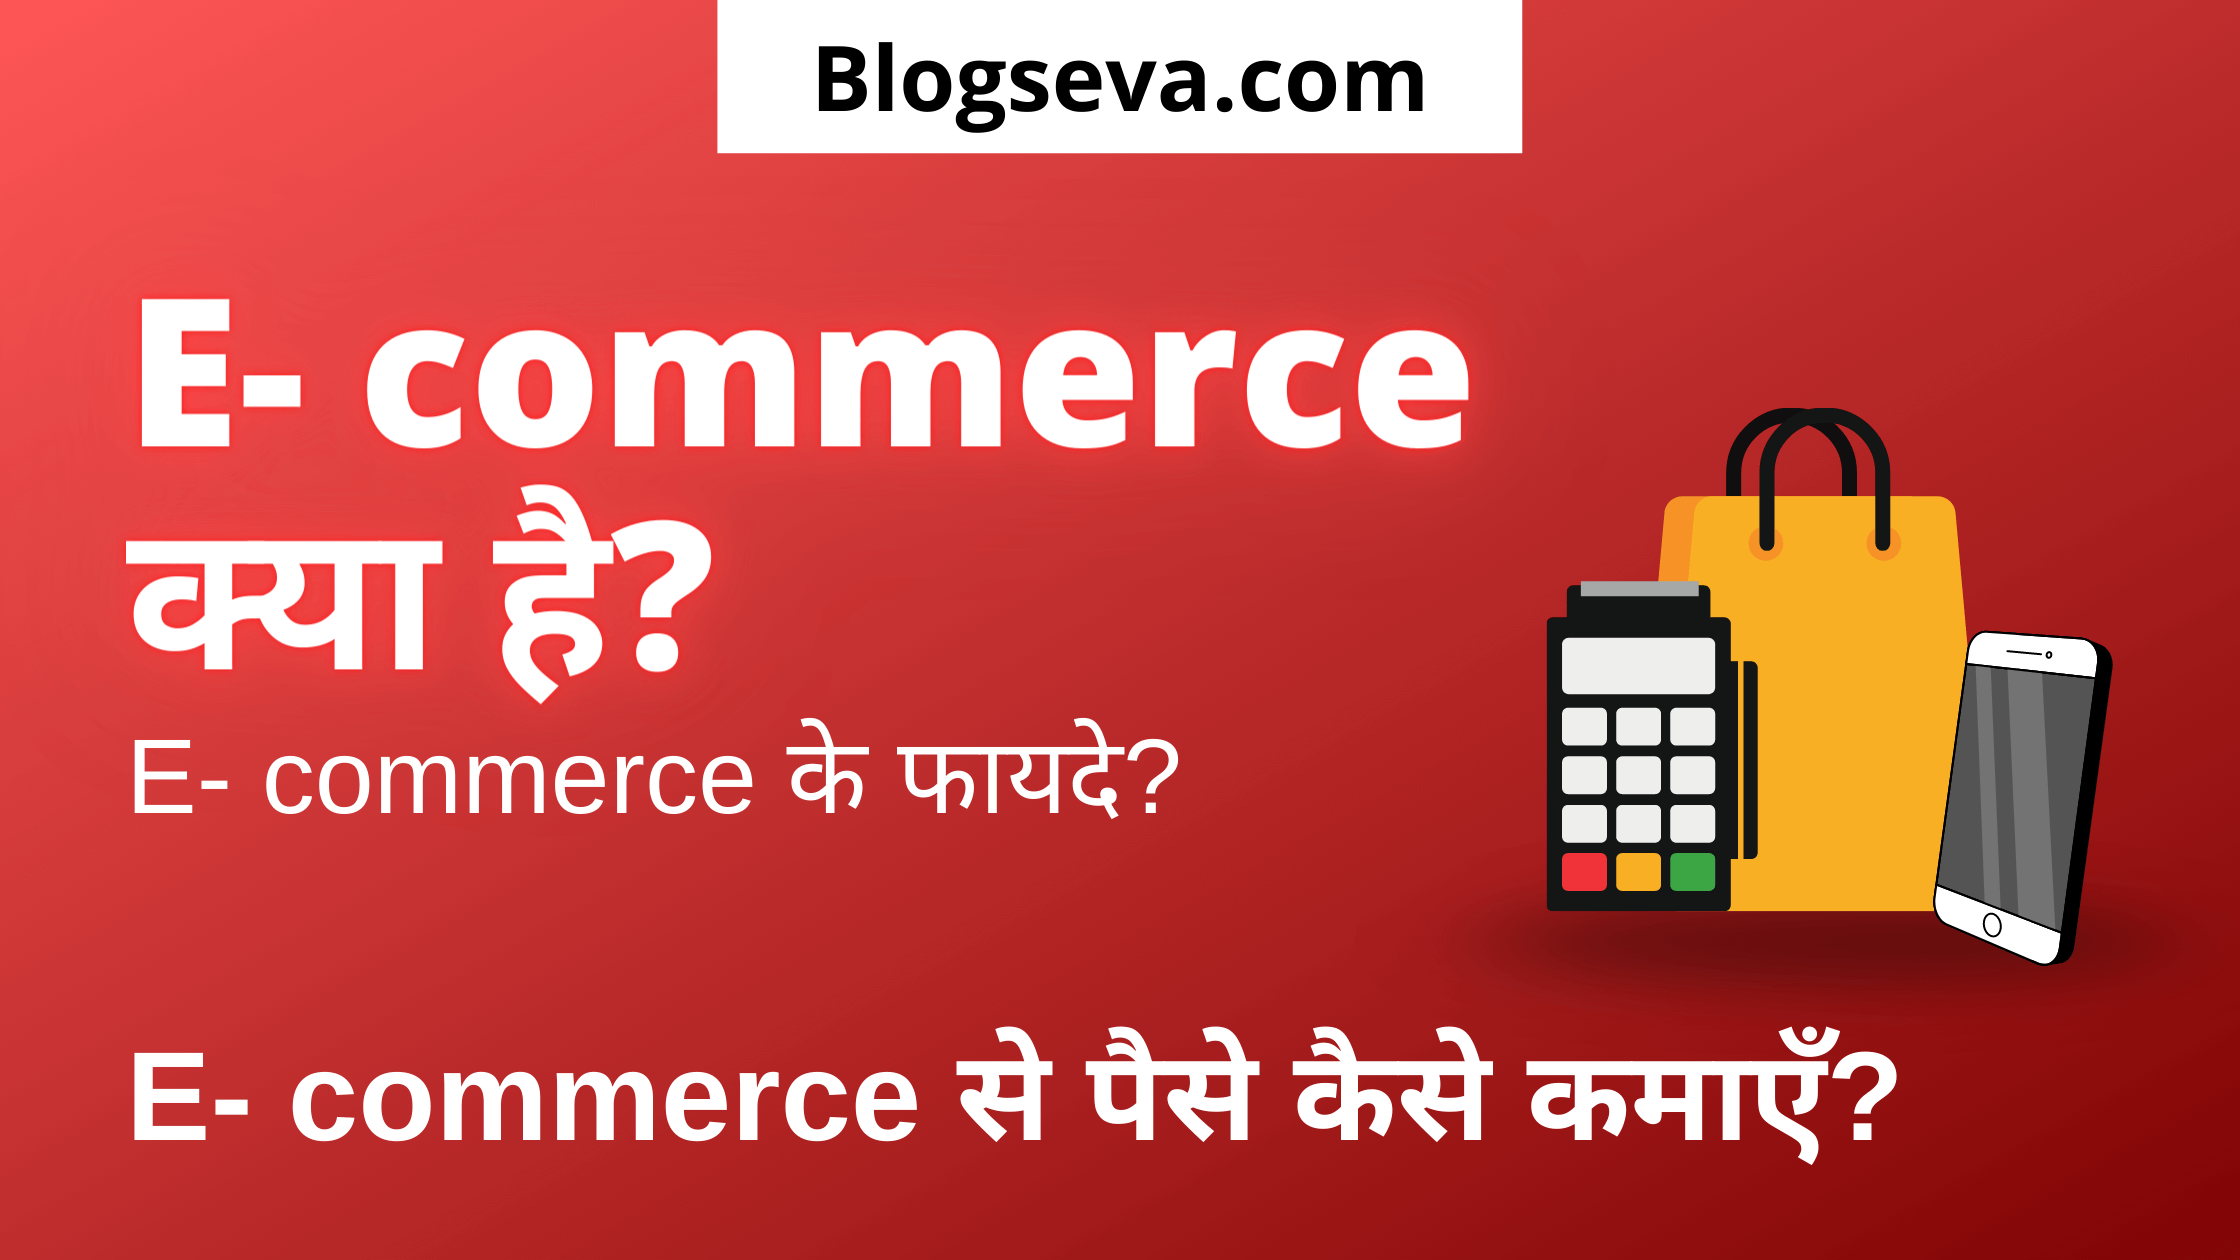 E commerce kya hai